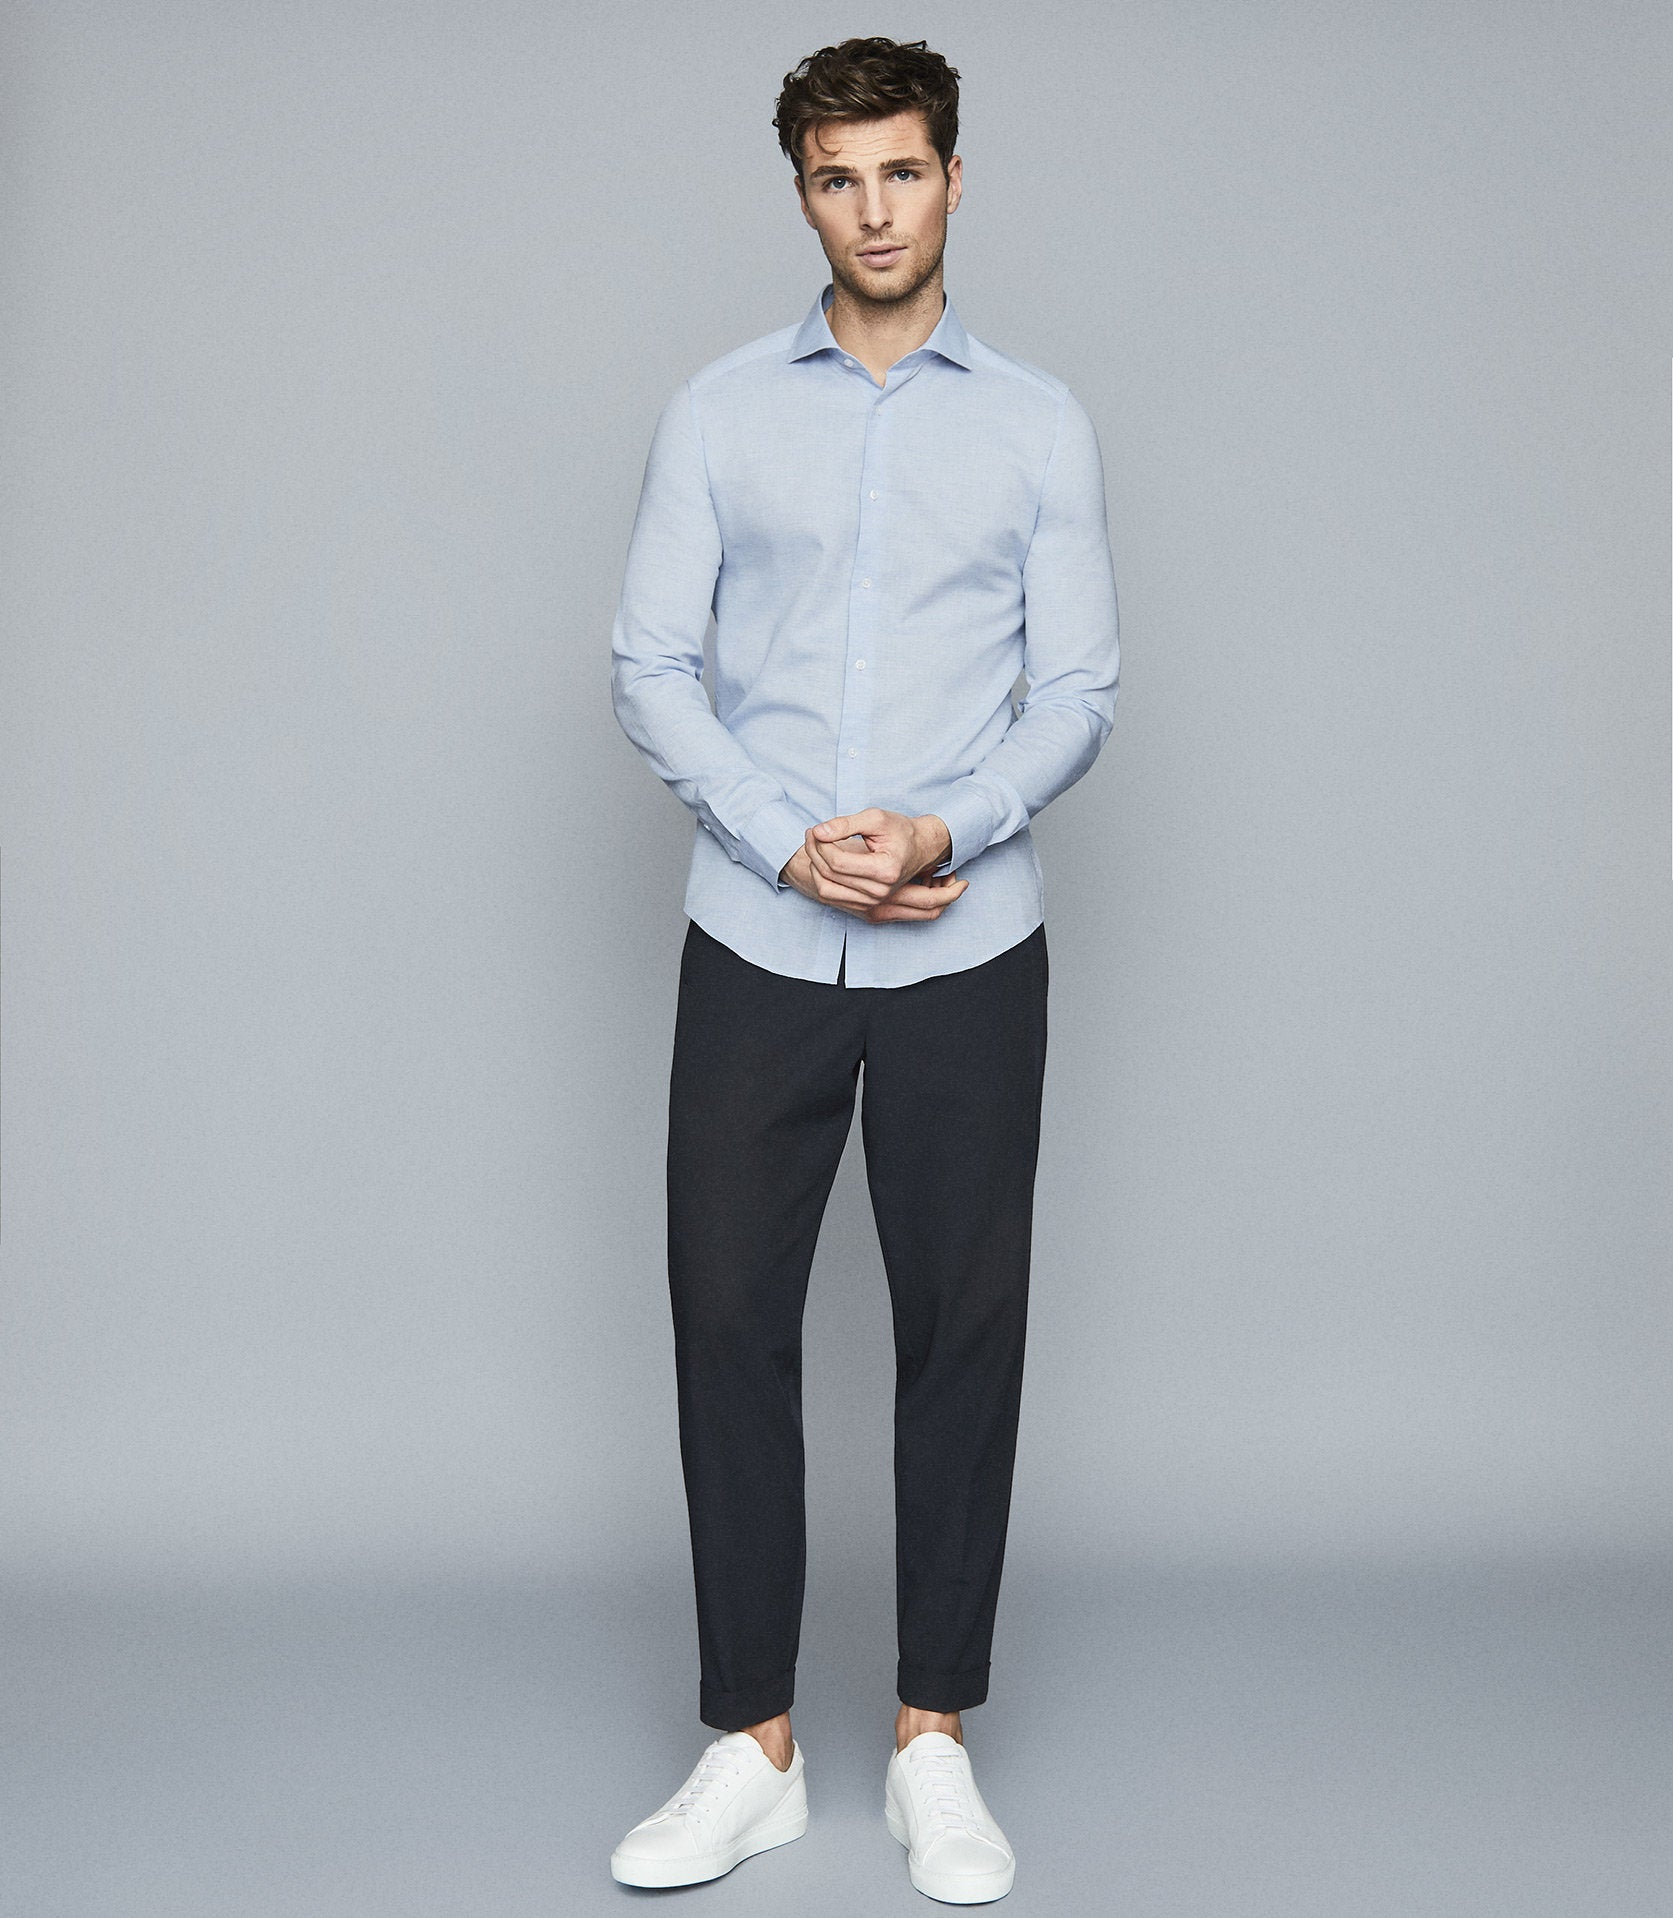 reiss mens shirts